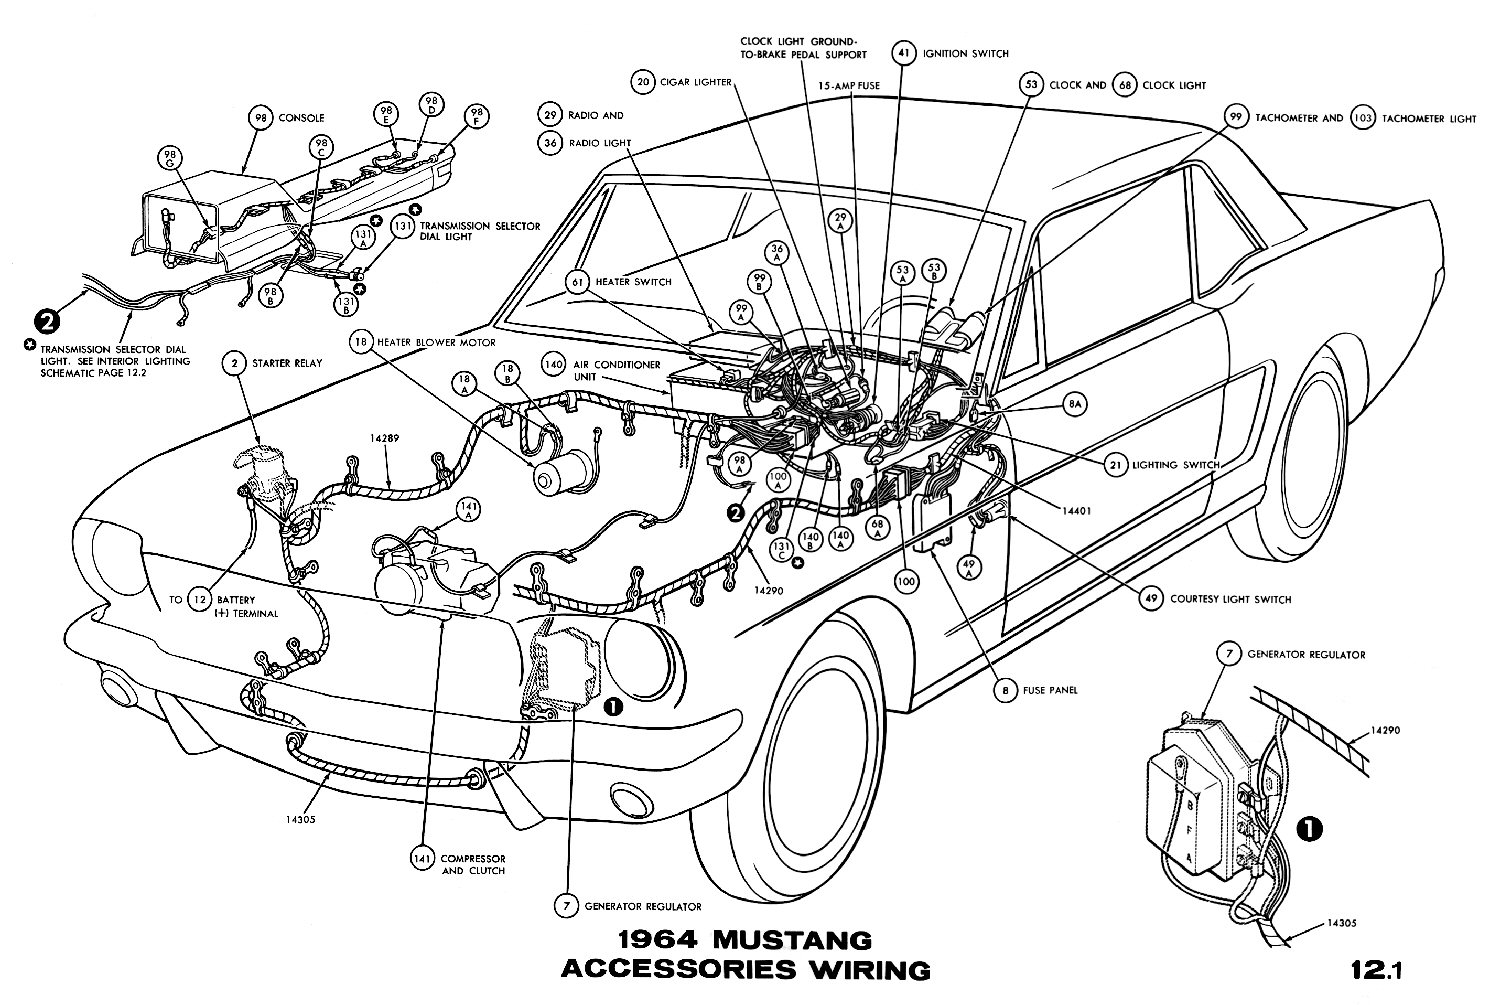 1964l 1964 mustang wiring diagrams average joe restoration Basic Electrical Wiring Diagrams at eliteediting.co